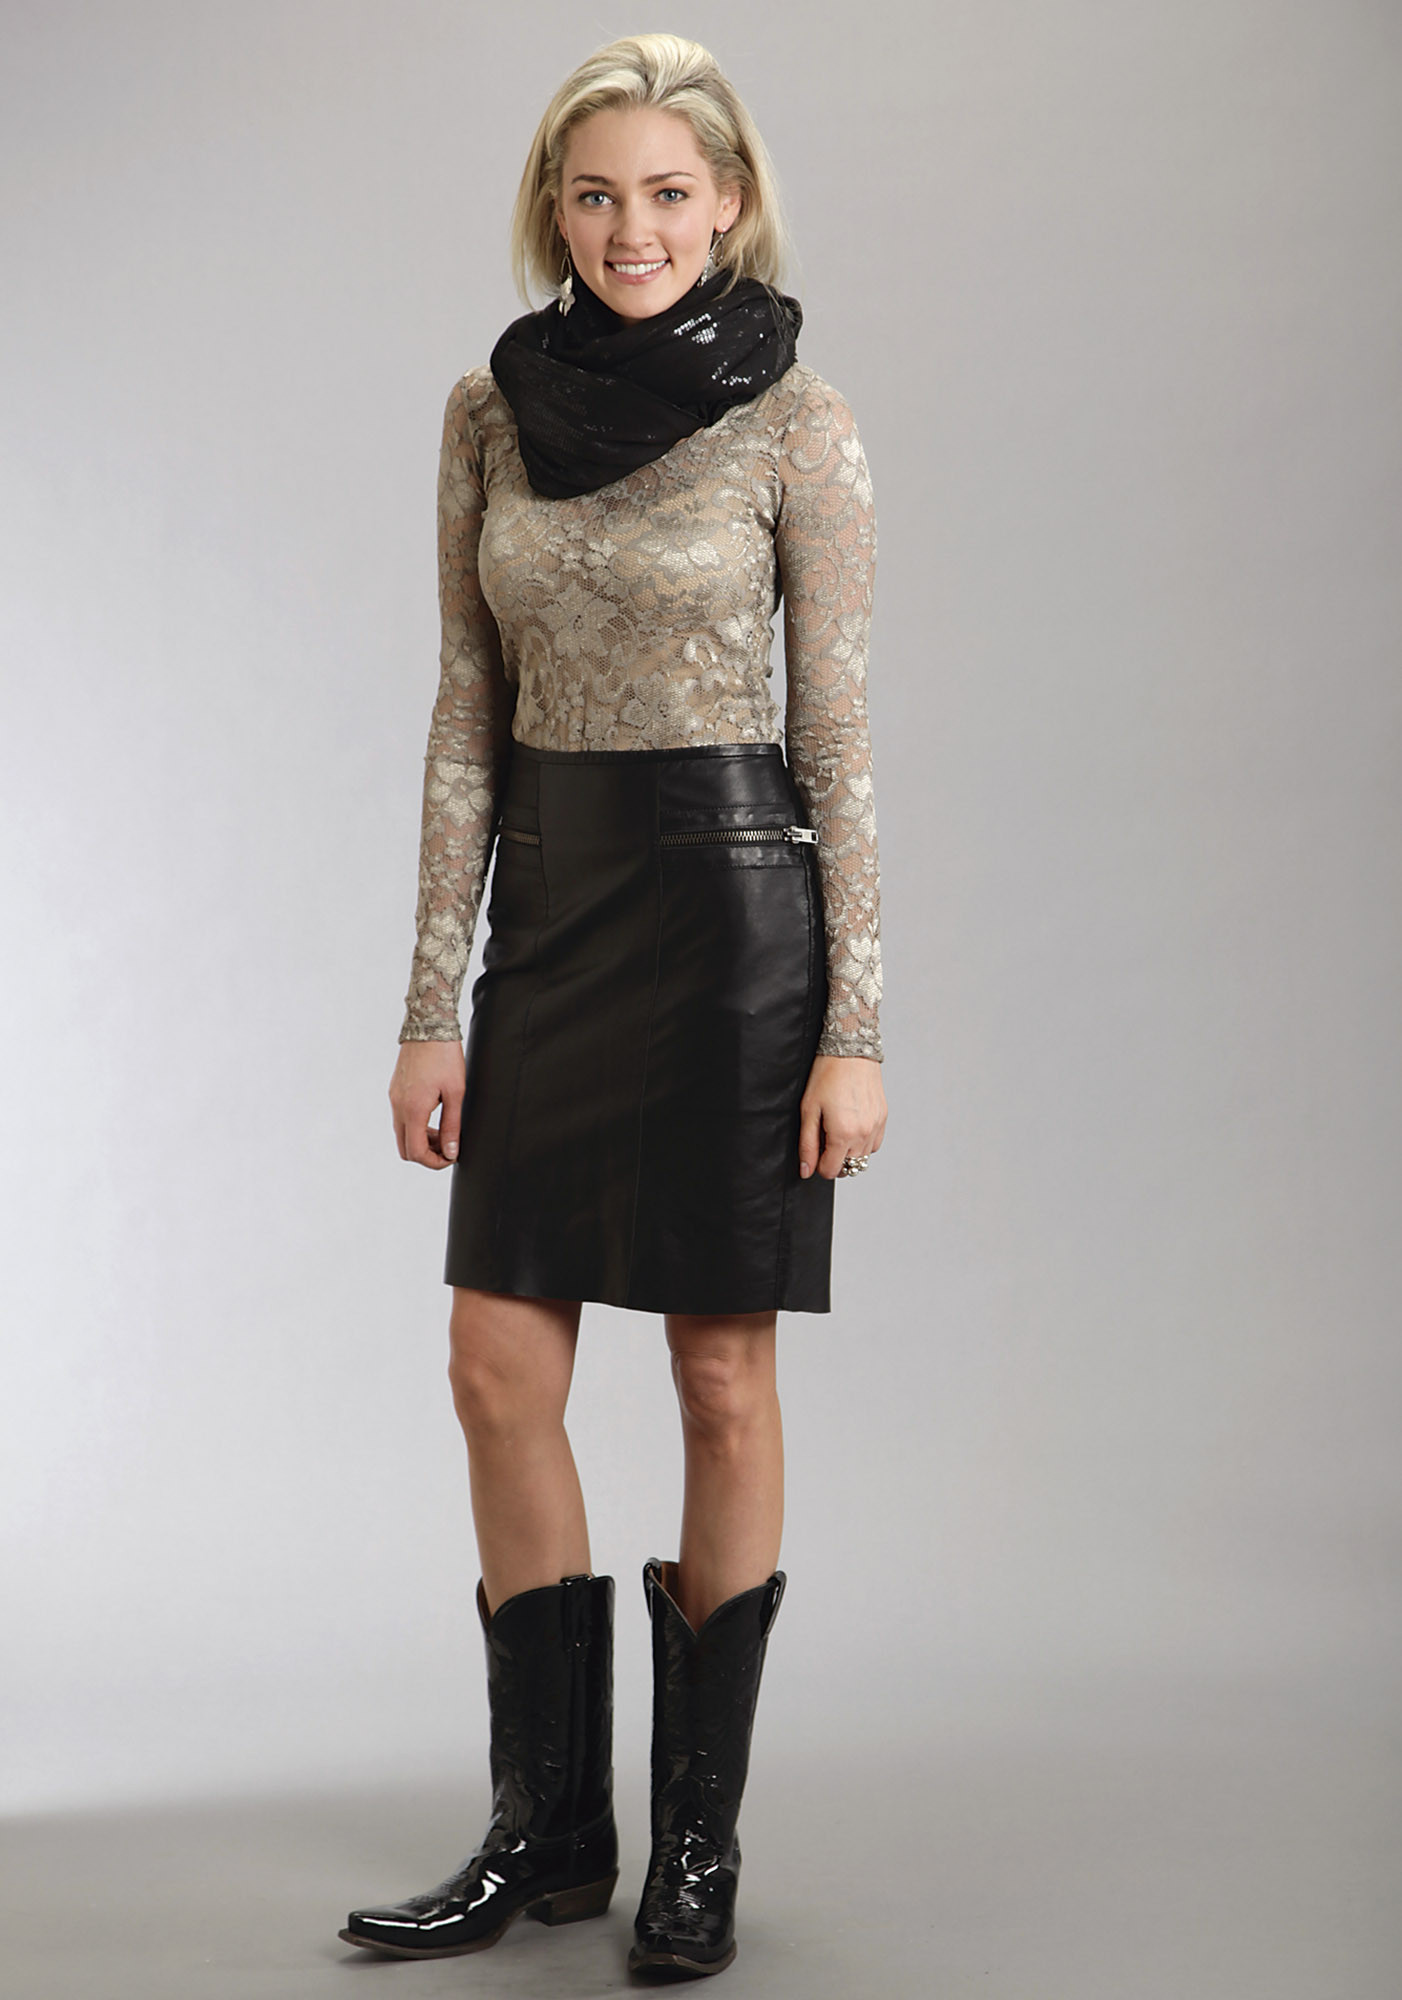 Stetson® Black Leather Zippered Pencil Skirt